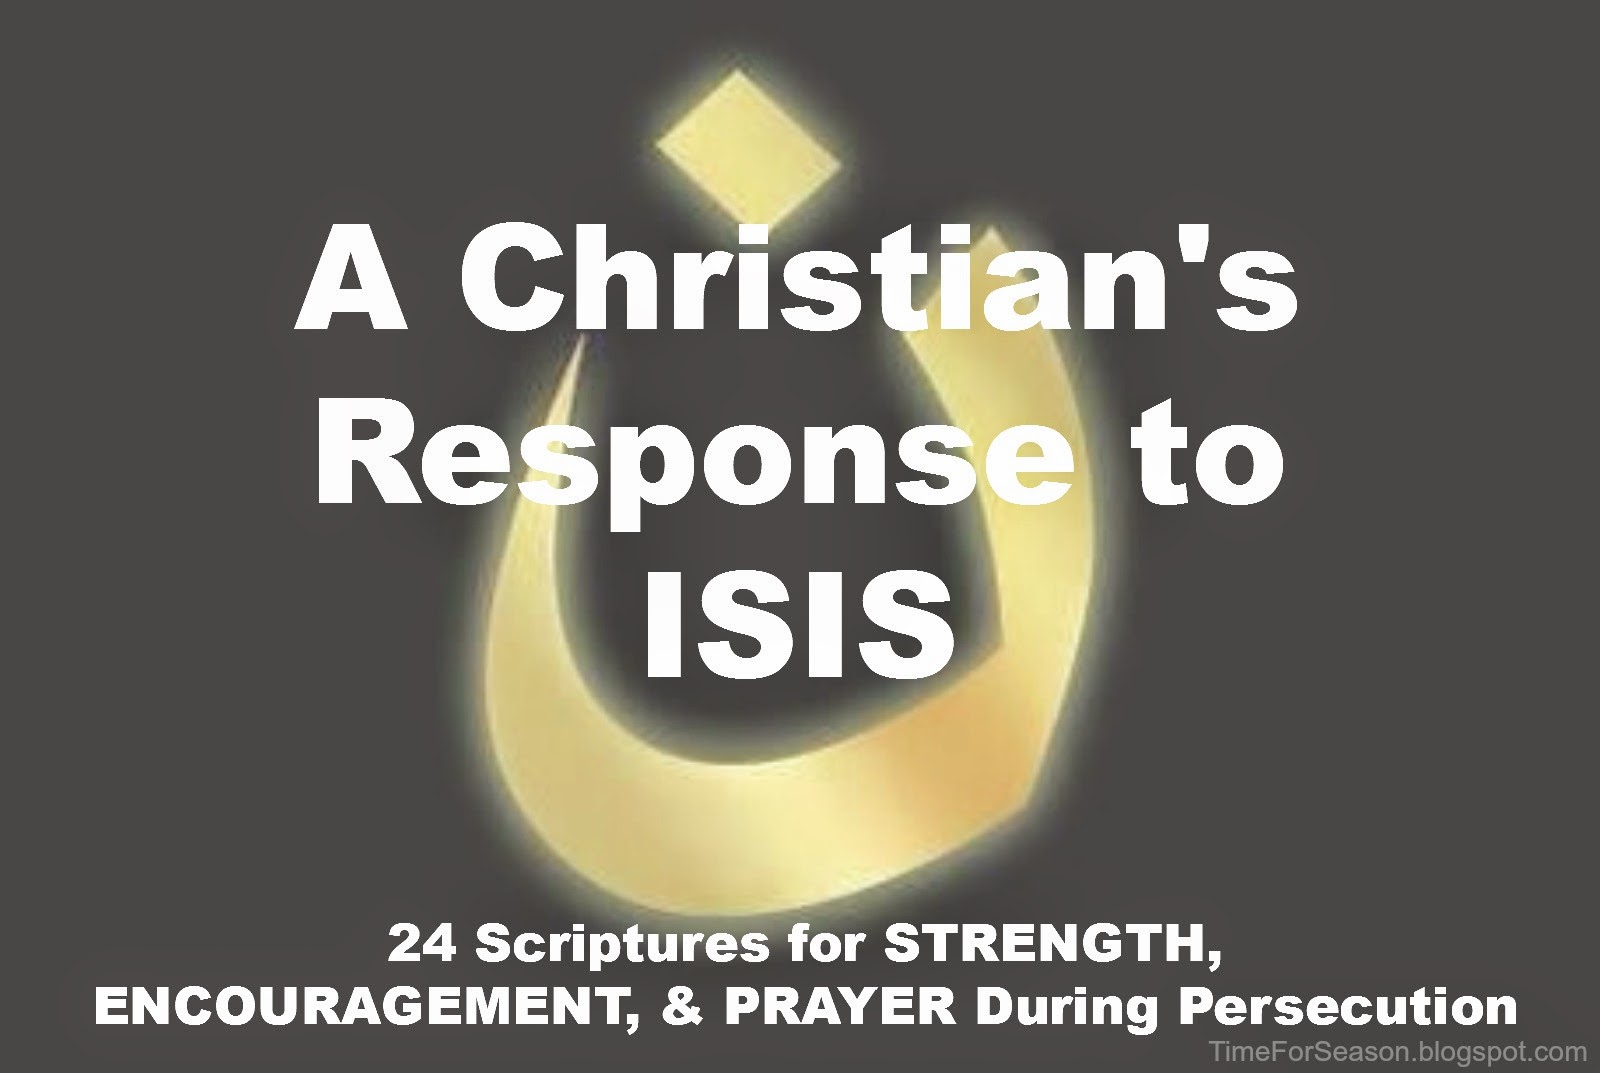 http://timeforseason.blogspot.com/2014/09/christian-scripture-response-to-isis-strength-encouragement-prayer-for-persecution.html